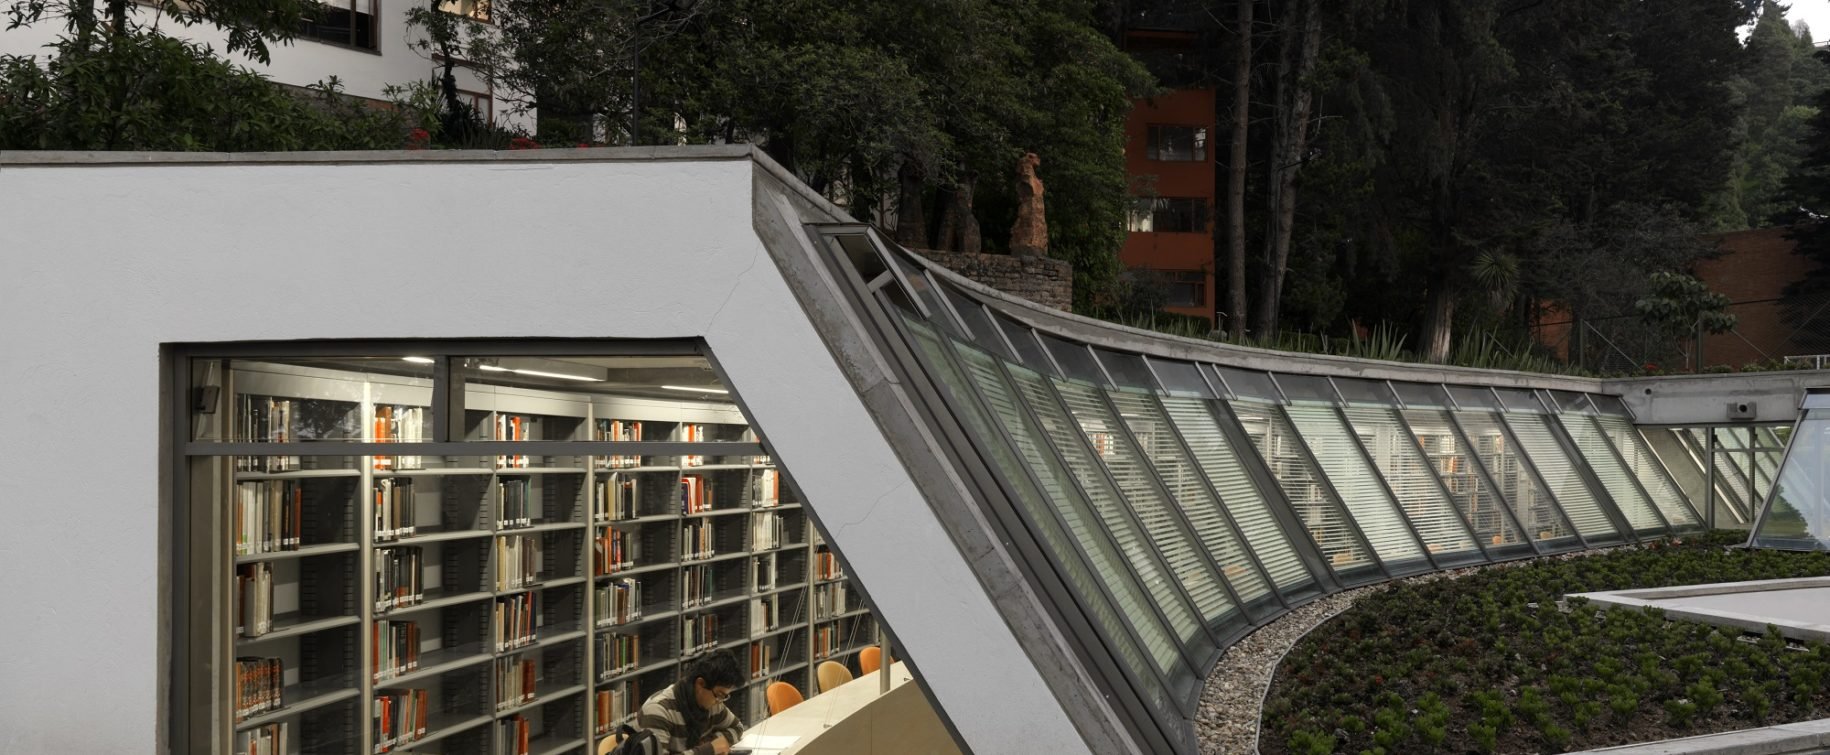 <h10>12/13 Economics Library Extension, Los Andes University</h10> Bogotá | Completed 2010